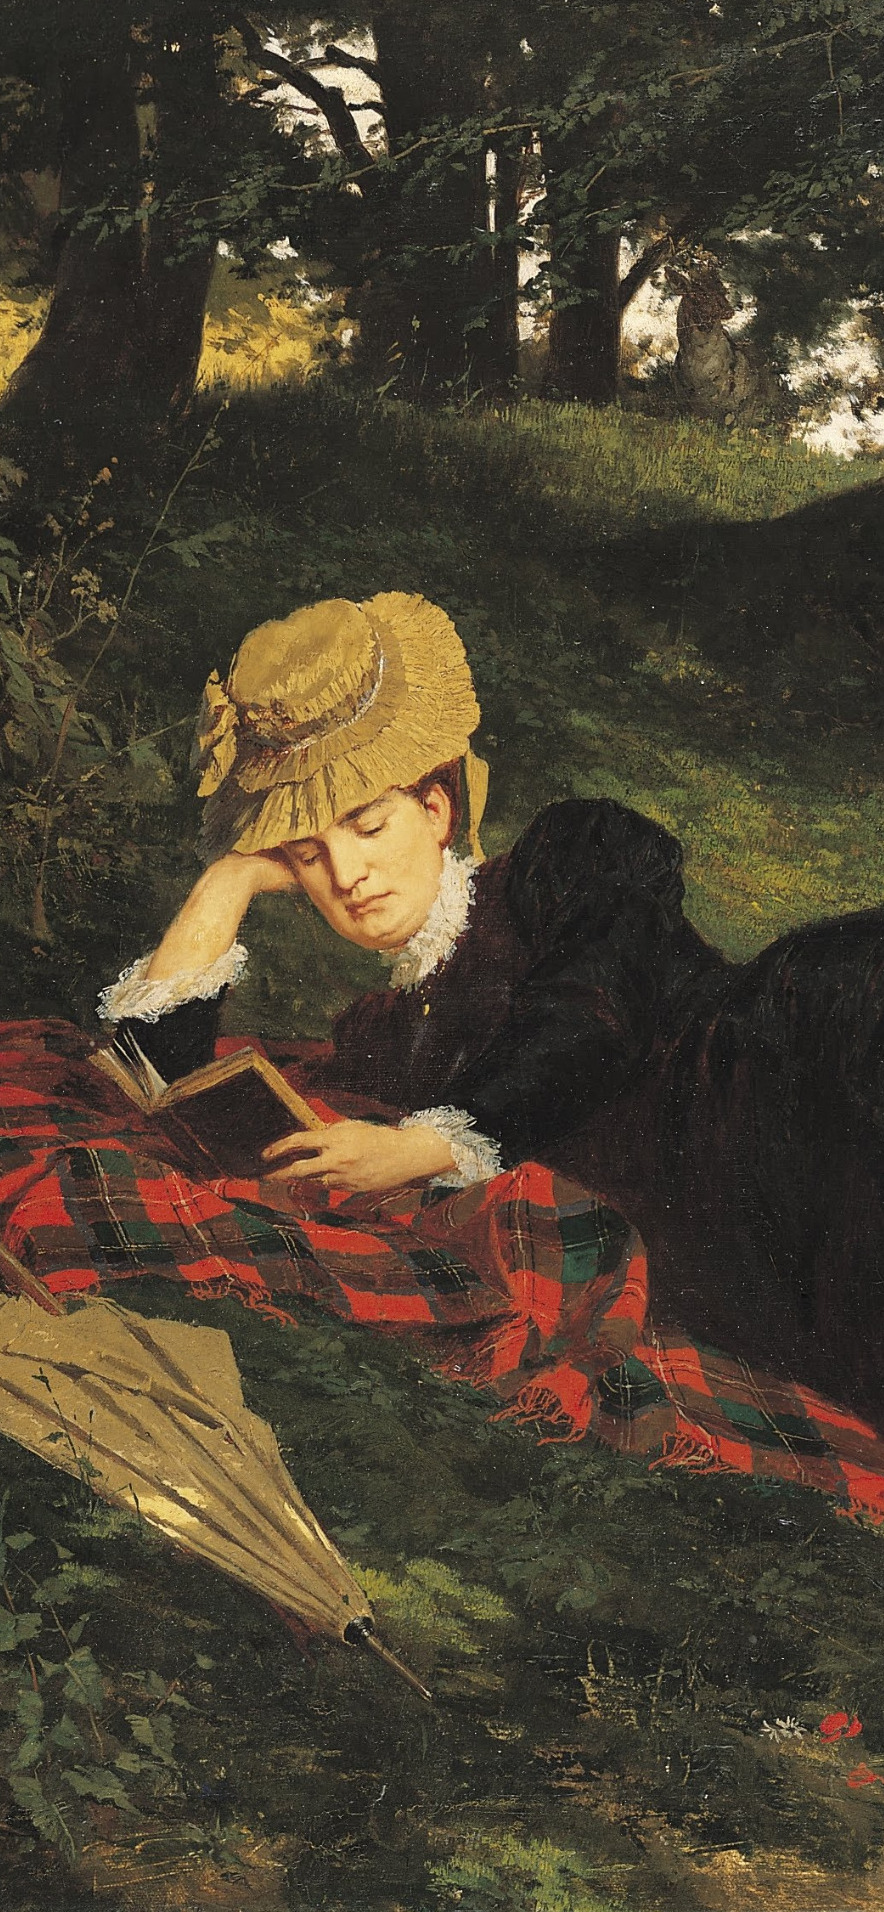 mscreenshot_2019-01-09 screenshot_2019-01-09-benczúr_gyula_-_woman_reading_in_a_forest_-_google_art_project-jpg-jpeg-image-[...]